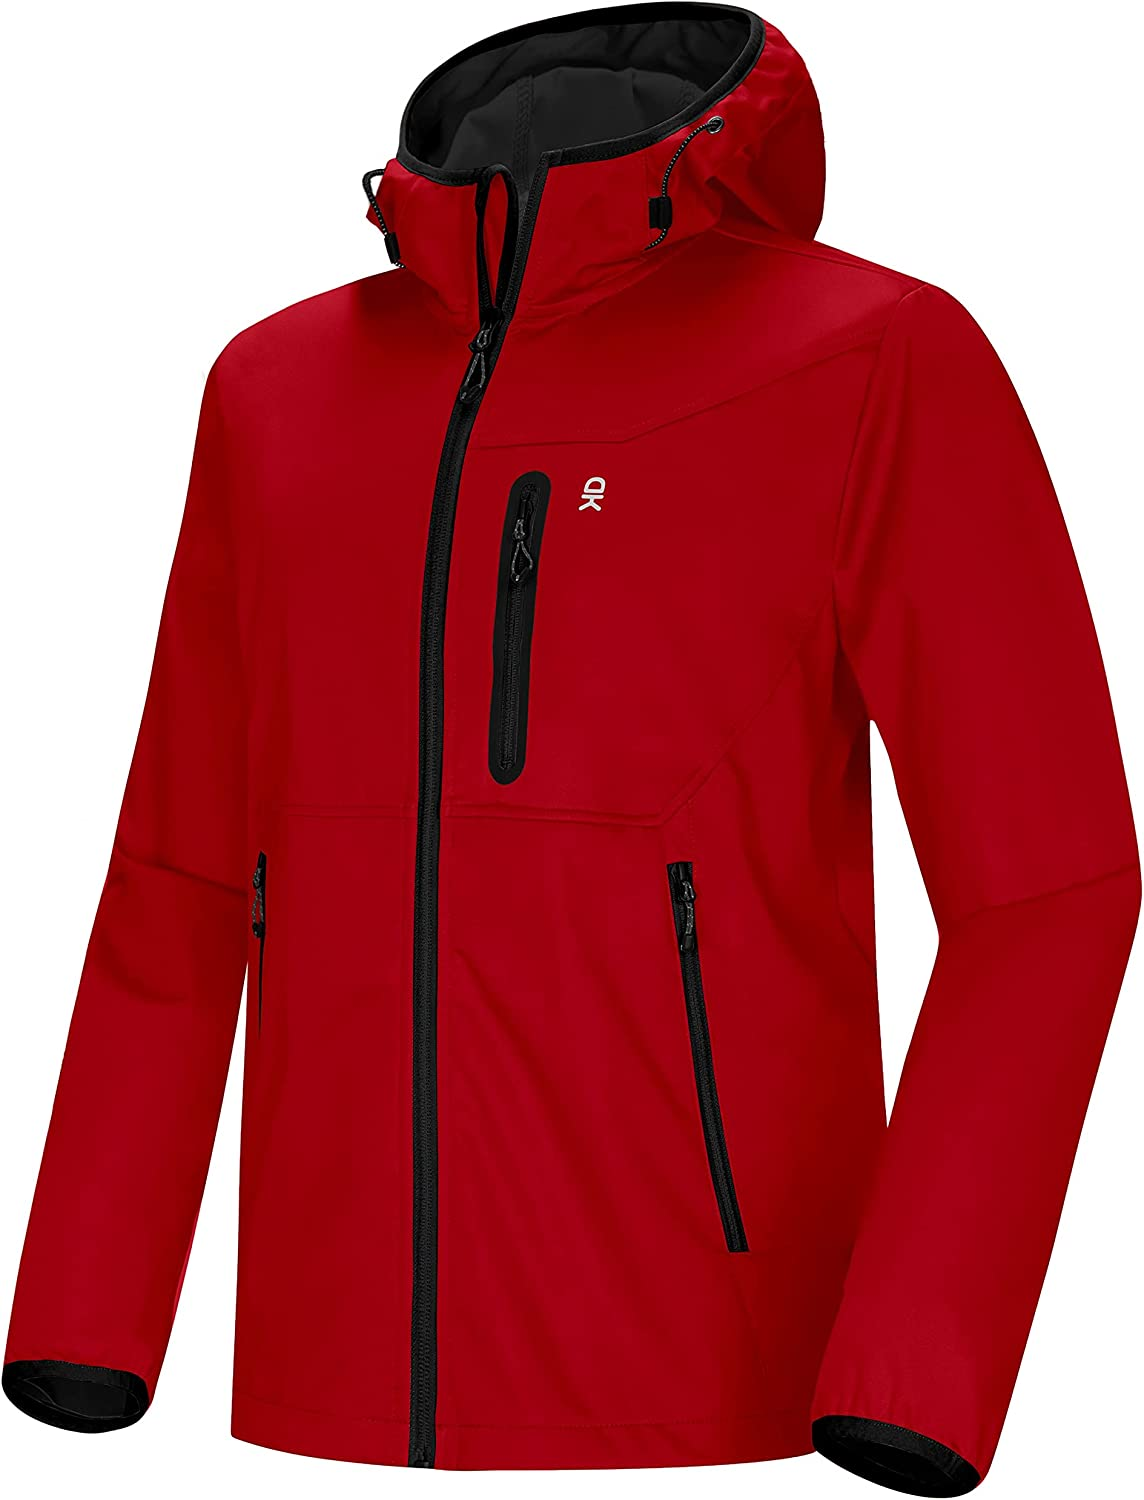 Little Donkey Andy Men's Lightweight Windbreaker, Softshell Jacket with Hood for Running Travel Hiking : Clothing